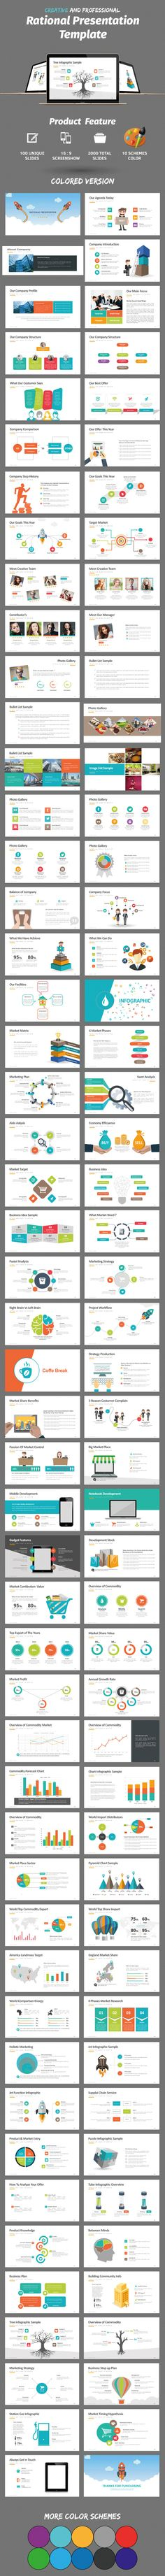 Rational Presentation Template #design #slides Download: http://graphicriver.net/item/rational-presentation-template/12835722?ref=ksioks